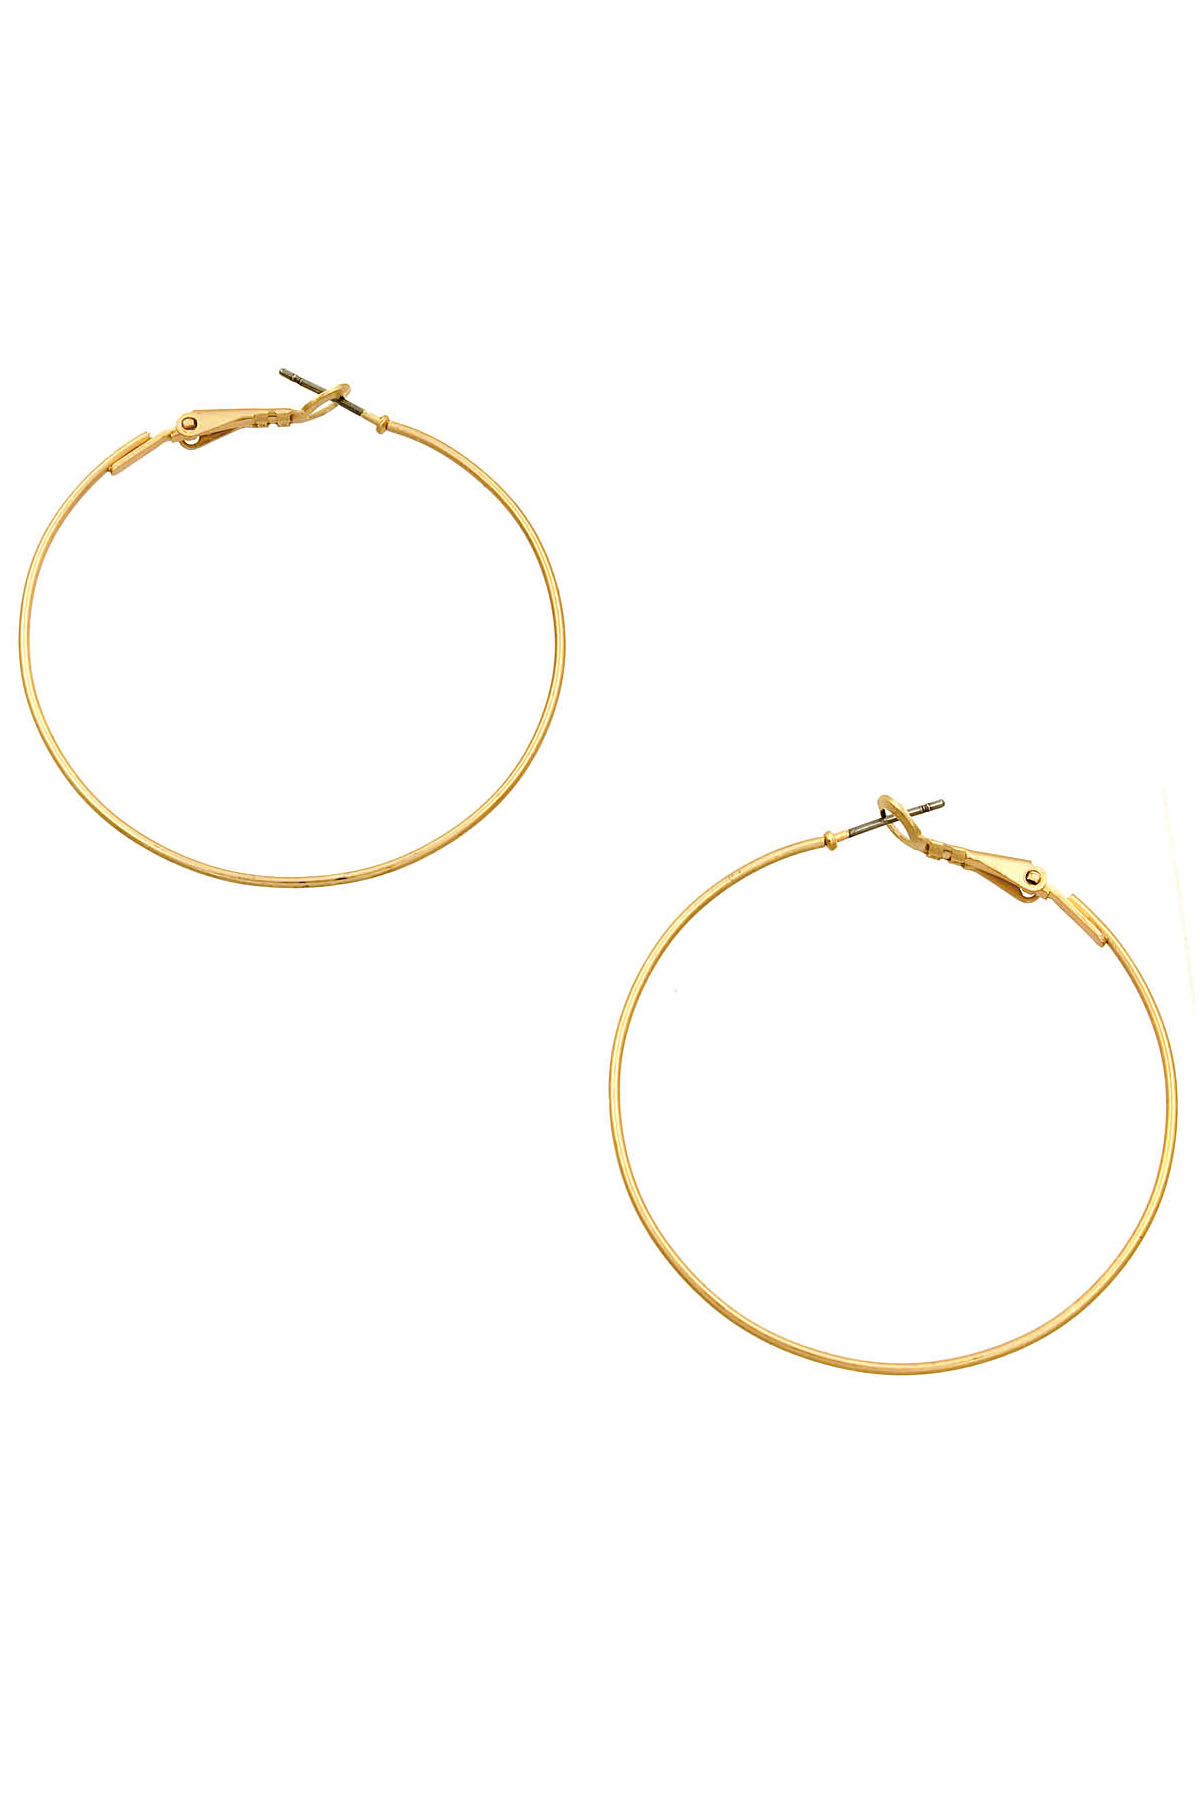 Shop deals for fine metal earrings on Groupon, where you can find everything from subtle gold studs to showstoppers like hoops in all sizes. 18K Rose Gold Flower Petal Earrings. Italian Sterling Silver 8mm Leverback Ball Earrings (1 or 3 Pairs).